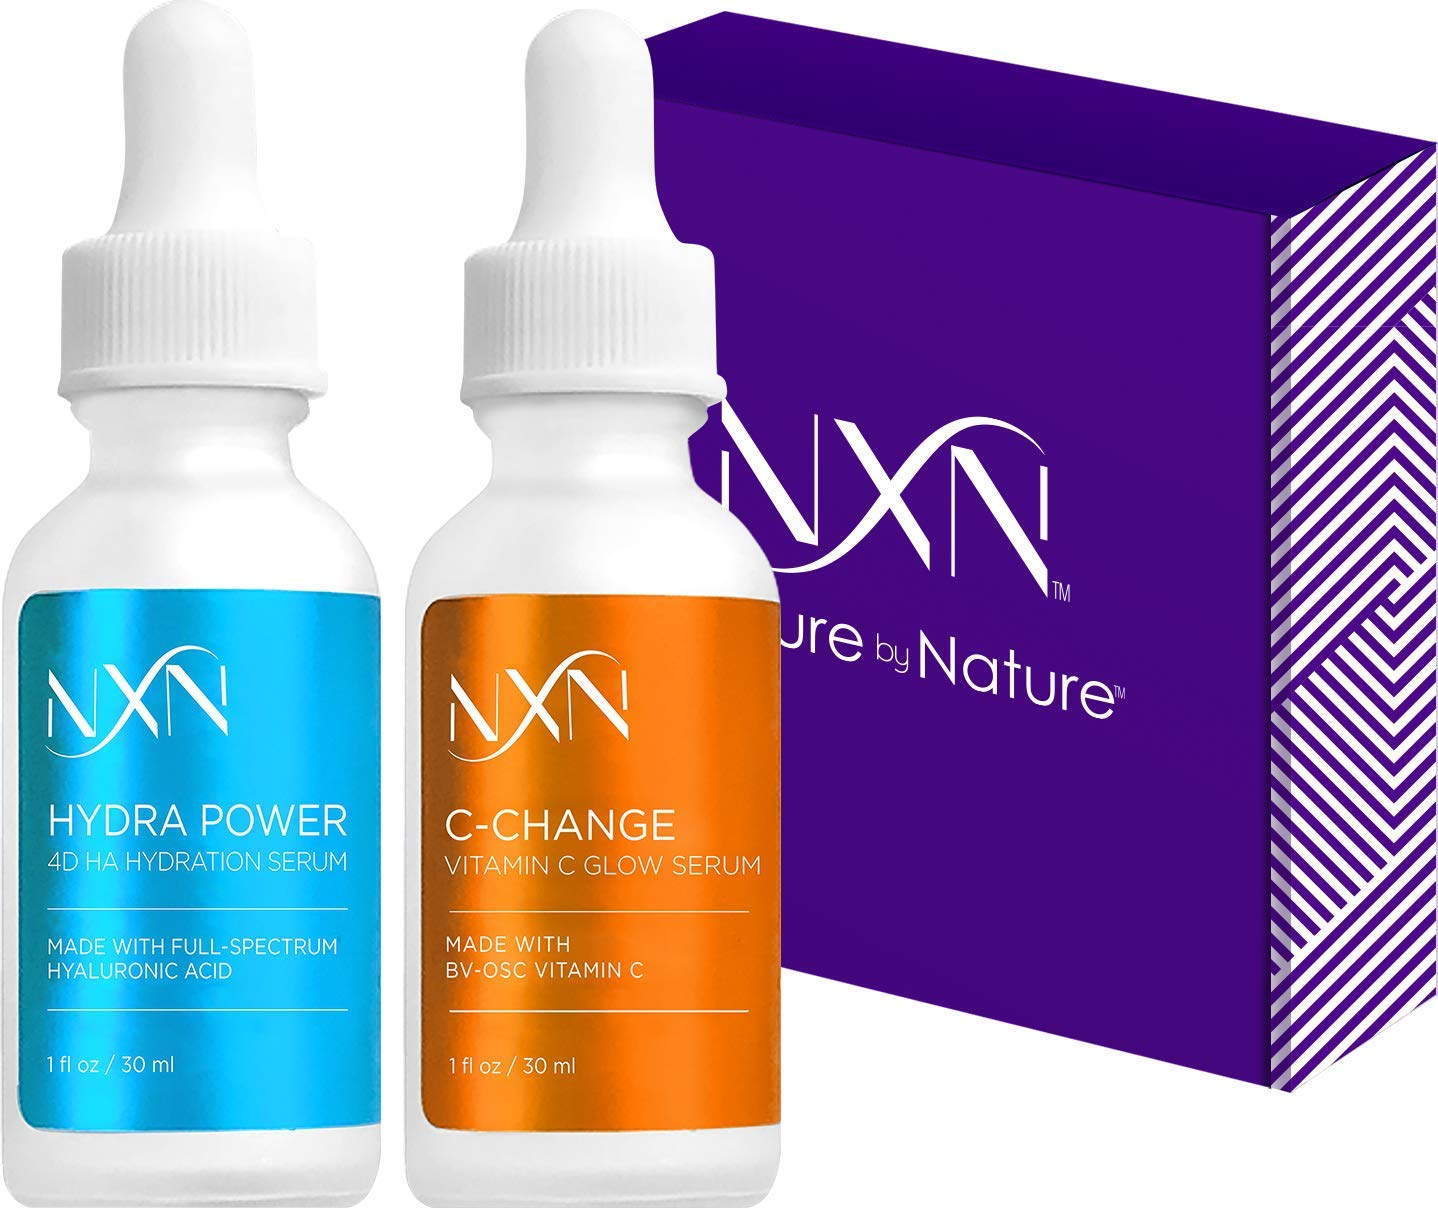 NxN Vitamin C Serum and Hyaluronic Acid Serum Doe With Pro BV-OSC, Clinically Proven to maximize absorption, increase hydration, brighten skin, reduce dark spots, fine lines and wrinkles 1fl oz each by Nurture by Nature